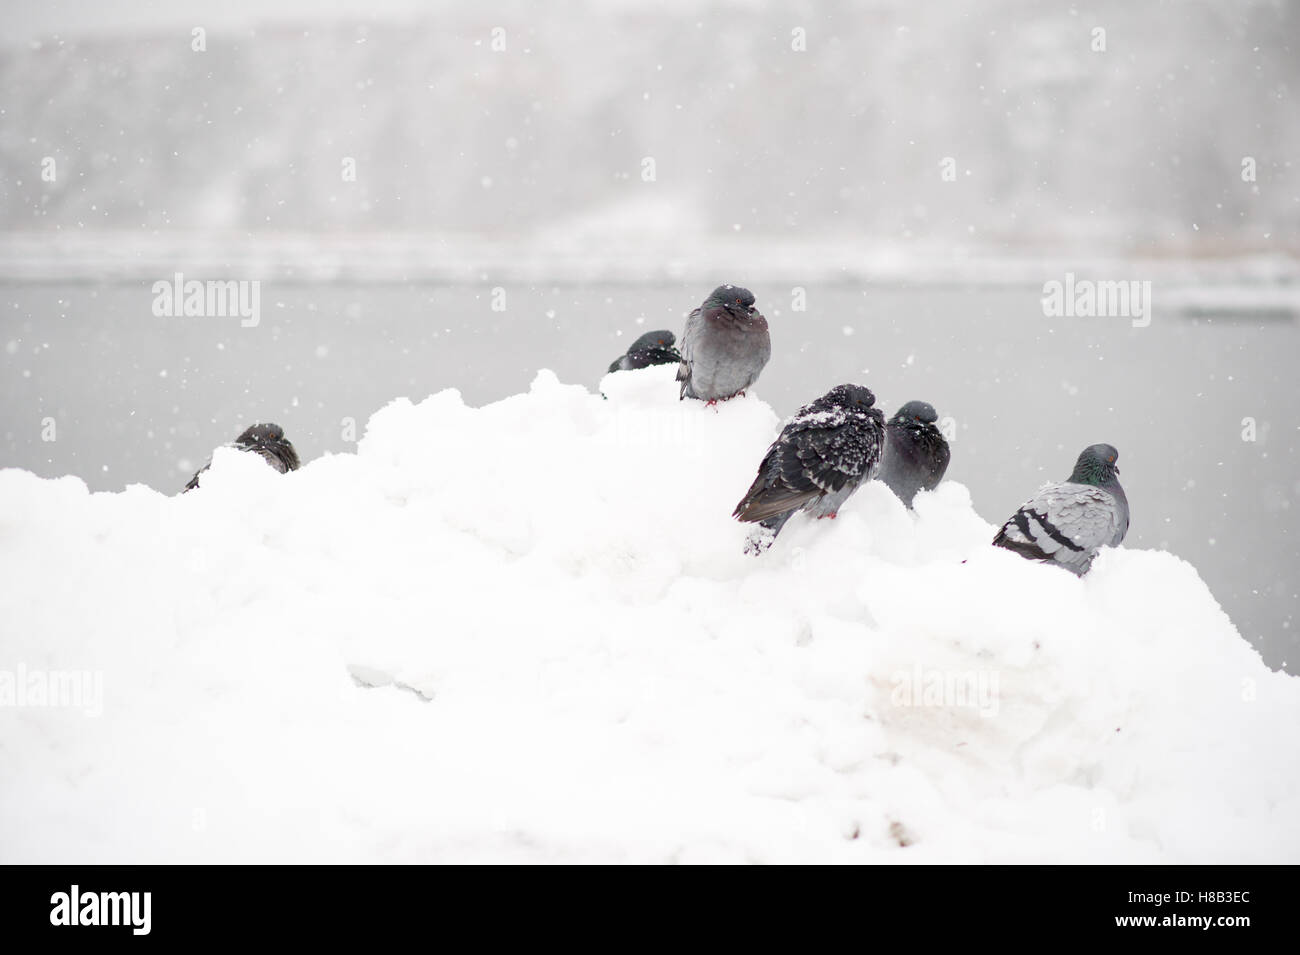 Freezing doves in a snowy Sweden. Stock Photo